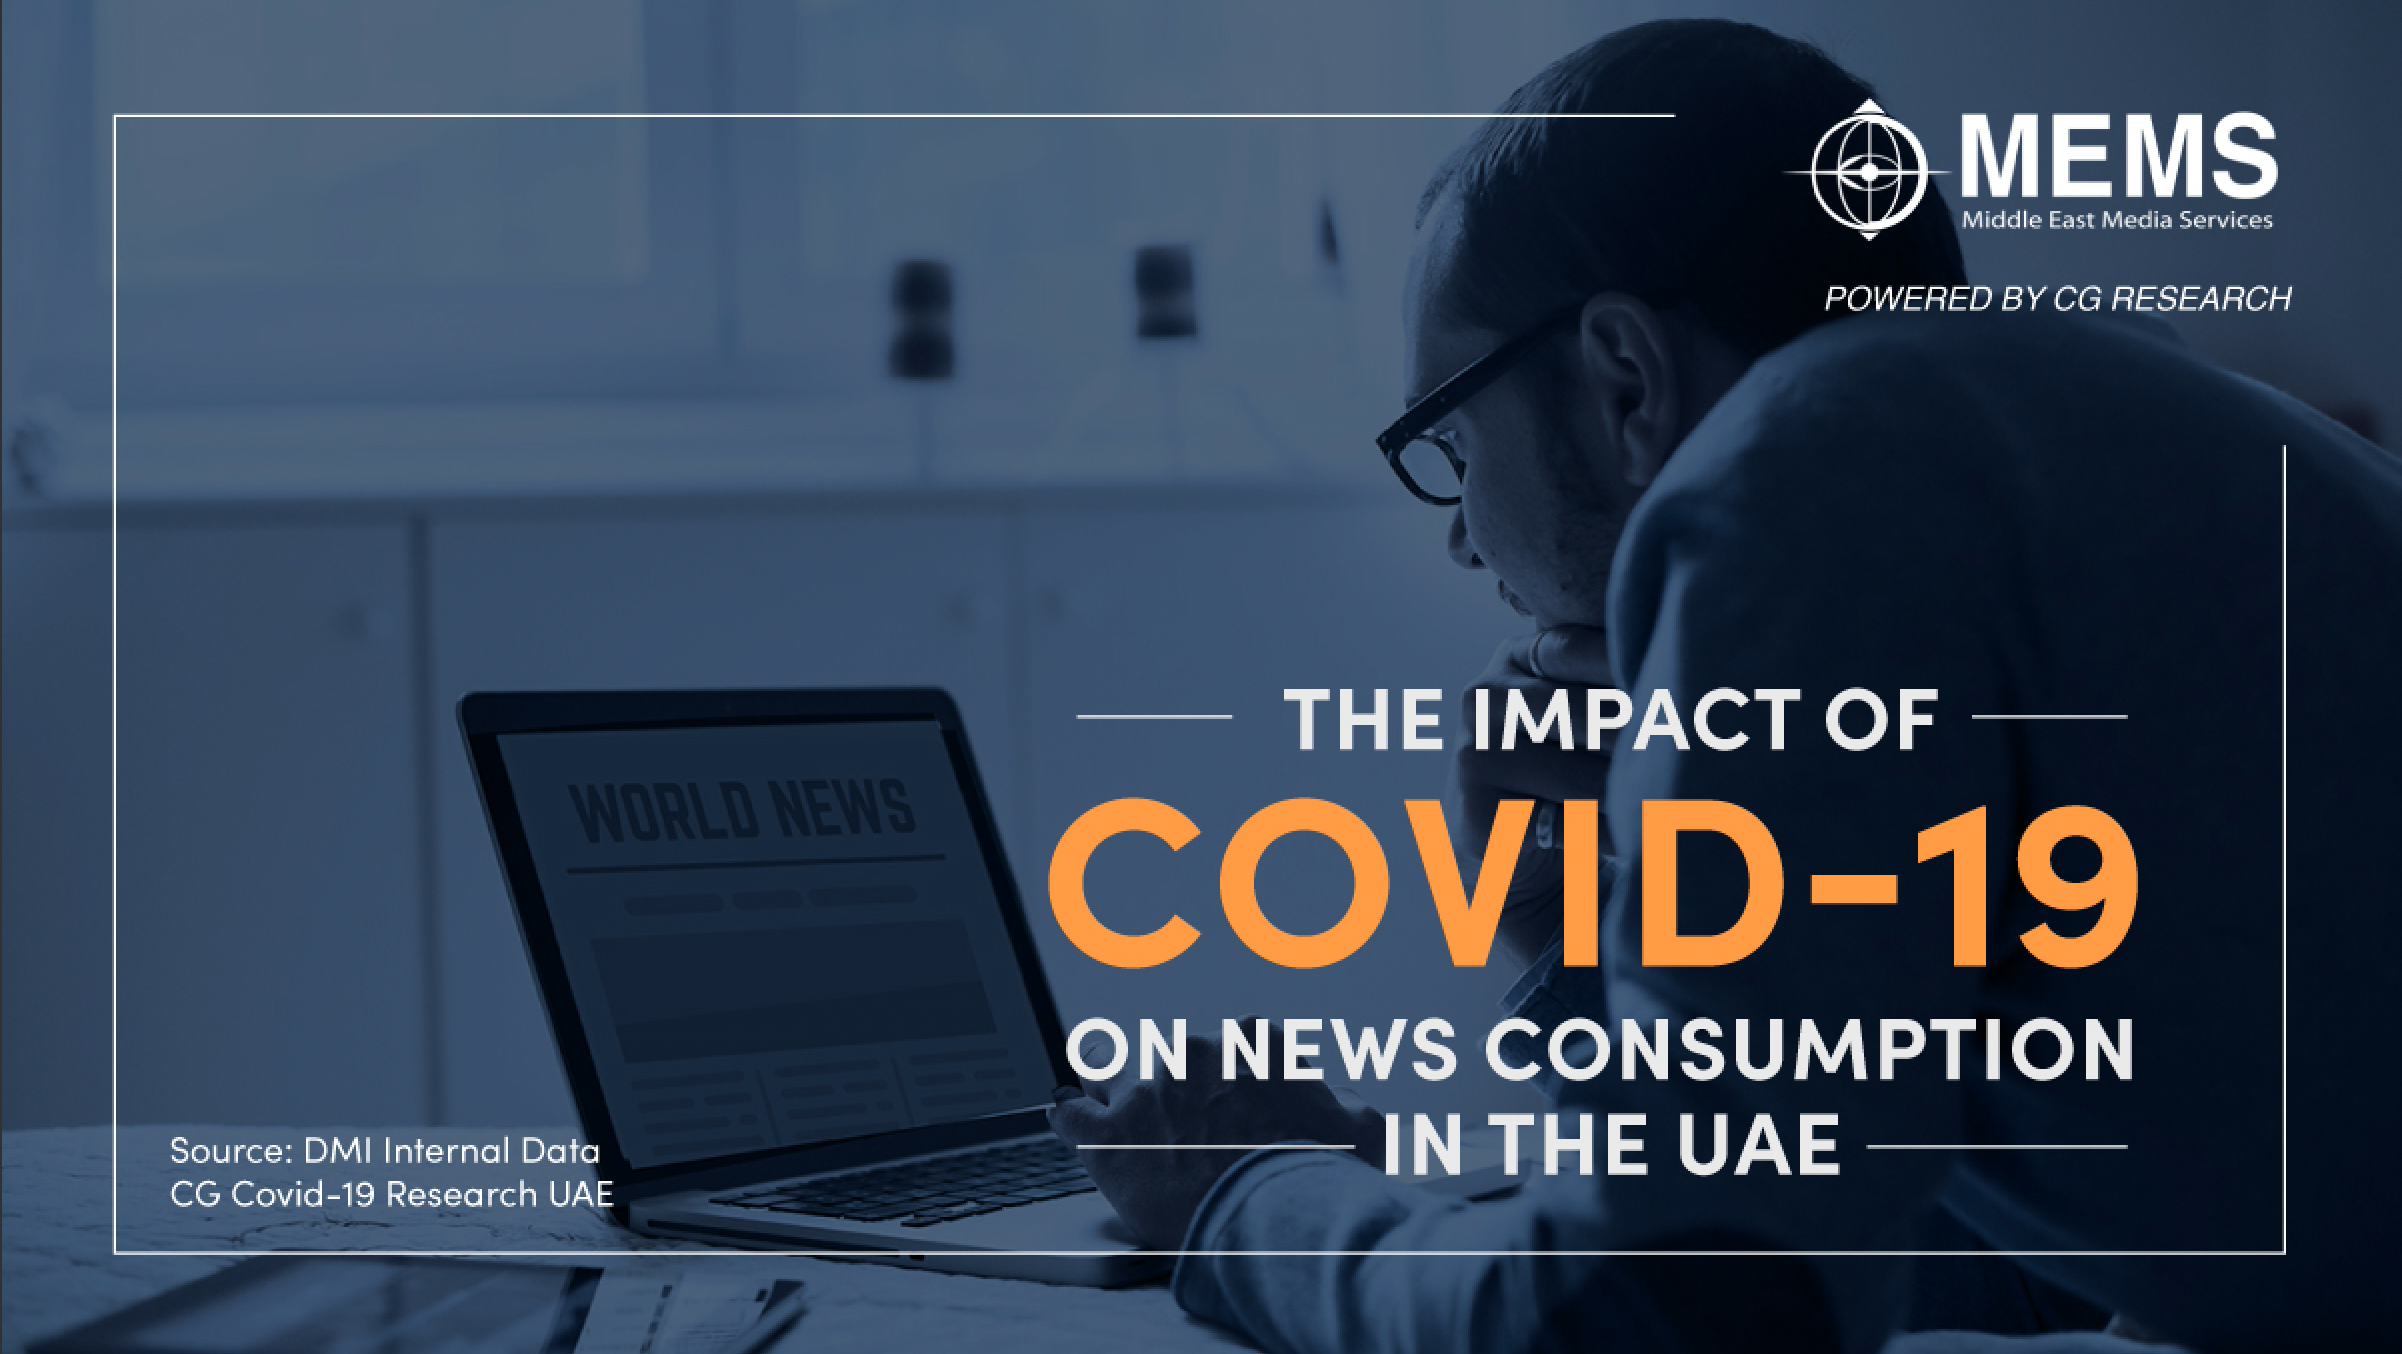 the-impact-of-covid-19-on-news-consumption-in-the-uae